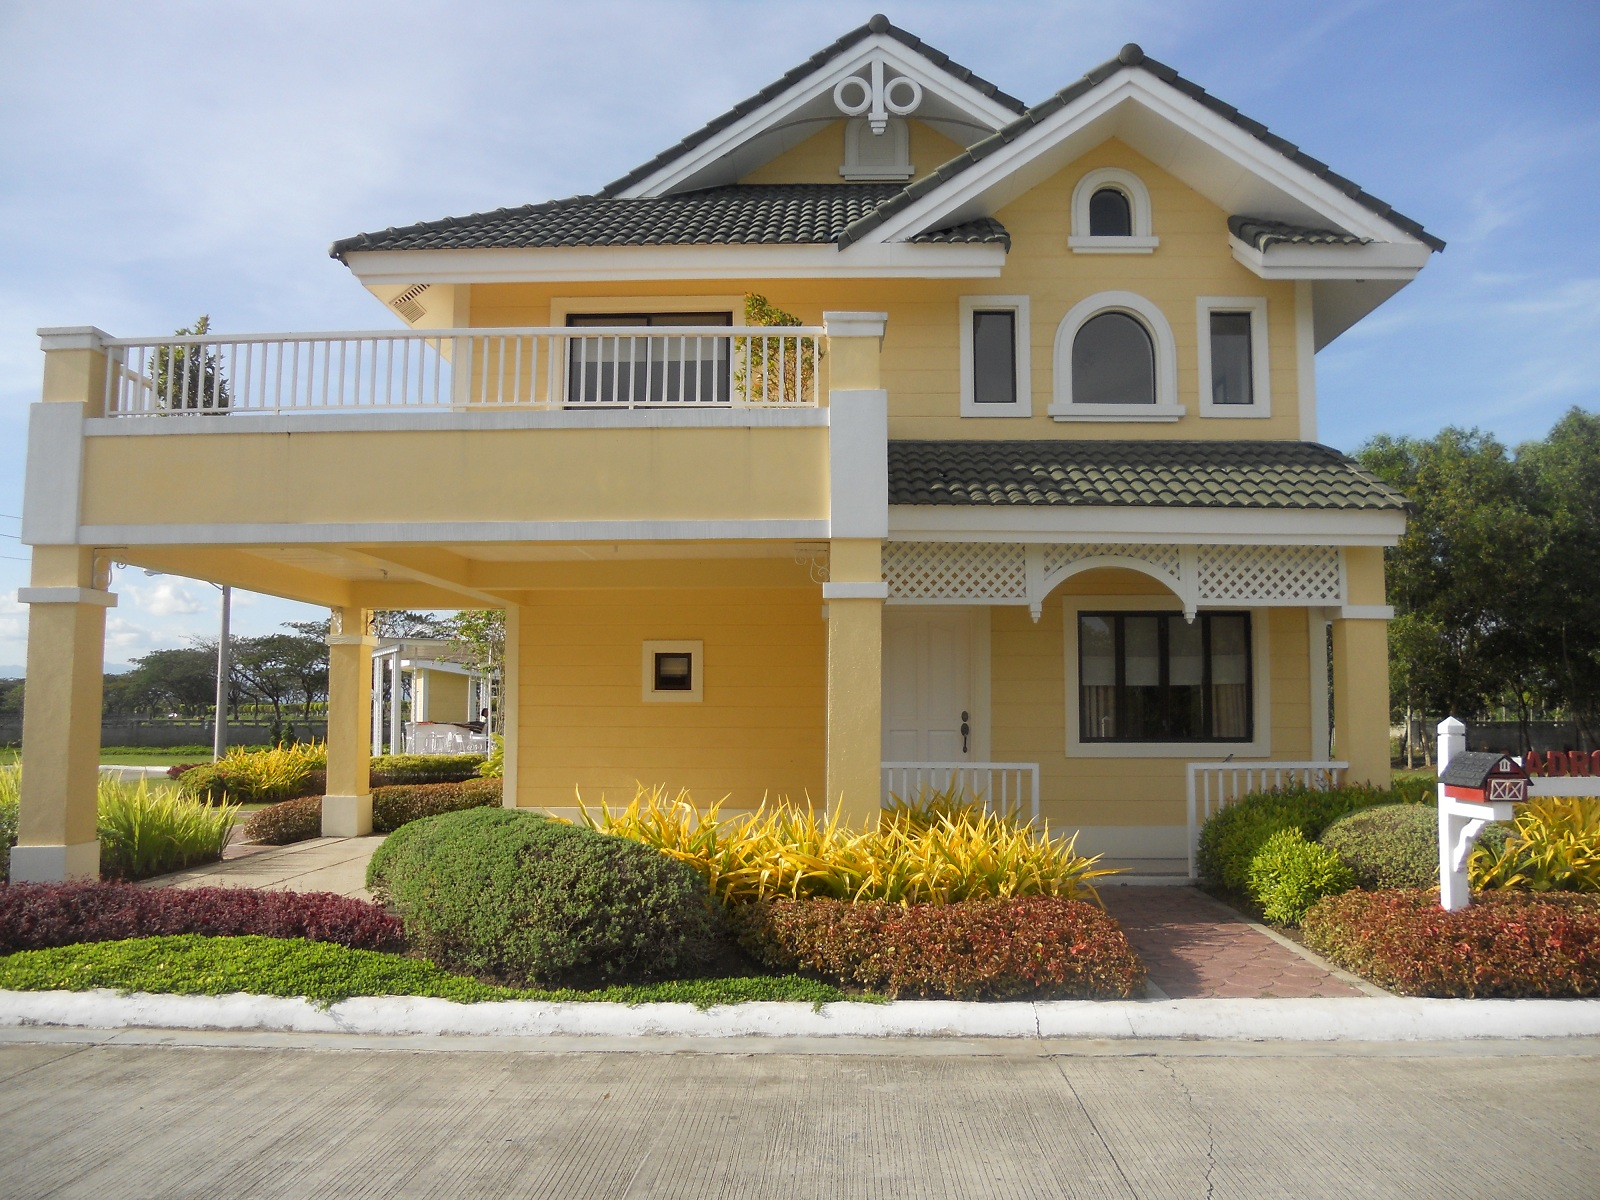 Savannah crest iloilo within savannah iloilo by camella for Photos of model homes